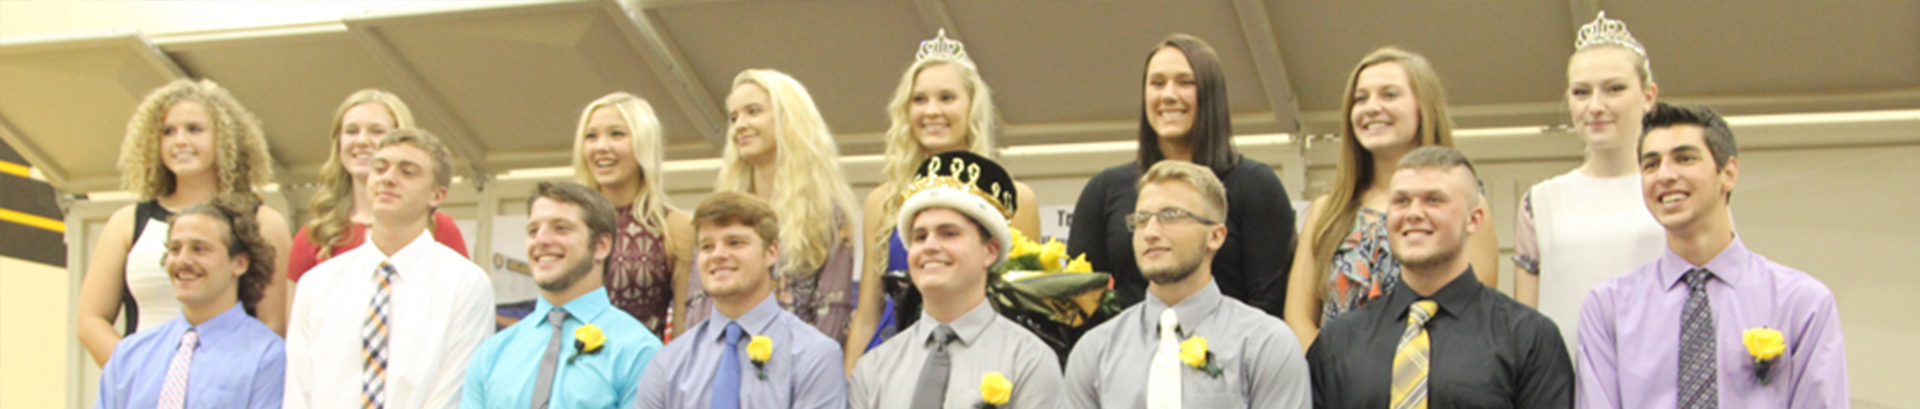 High School Banner Homecoming Court